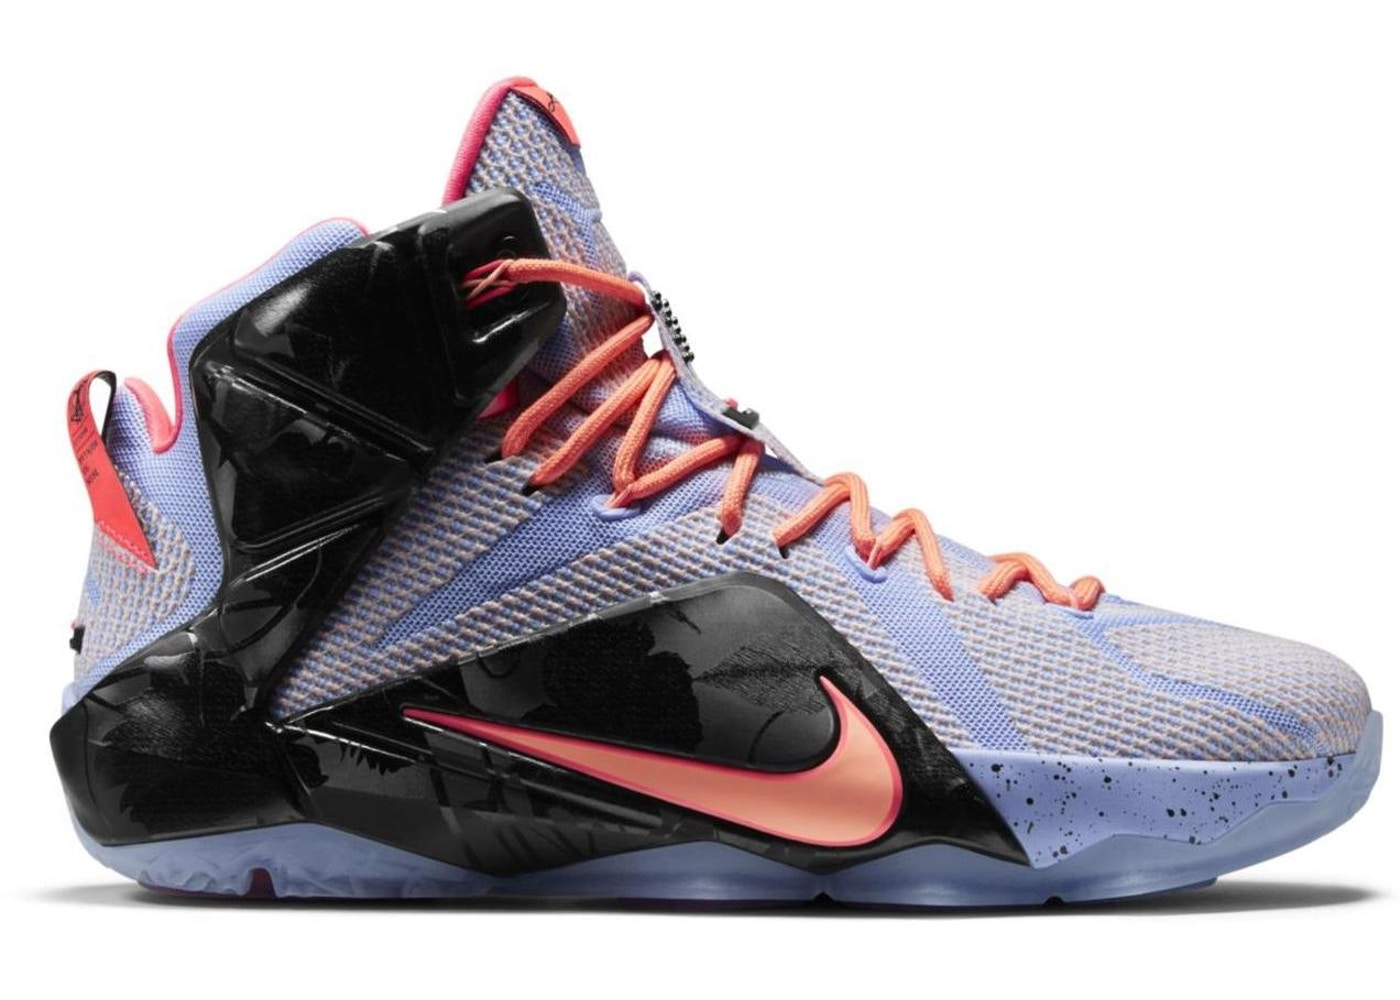 official photos 0fbfc 96bee LeBron 12 Easter - 684593-488